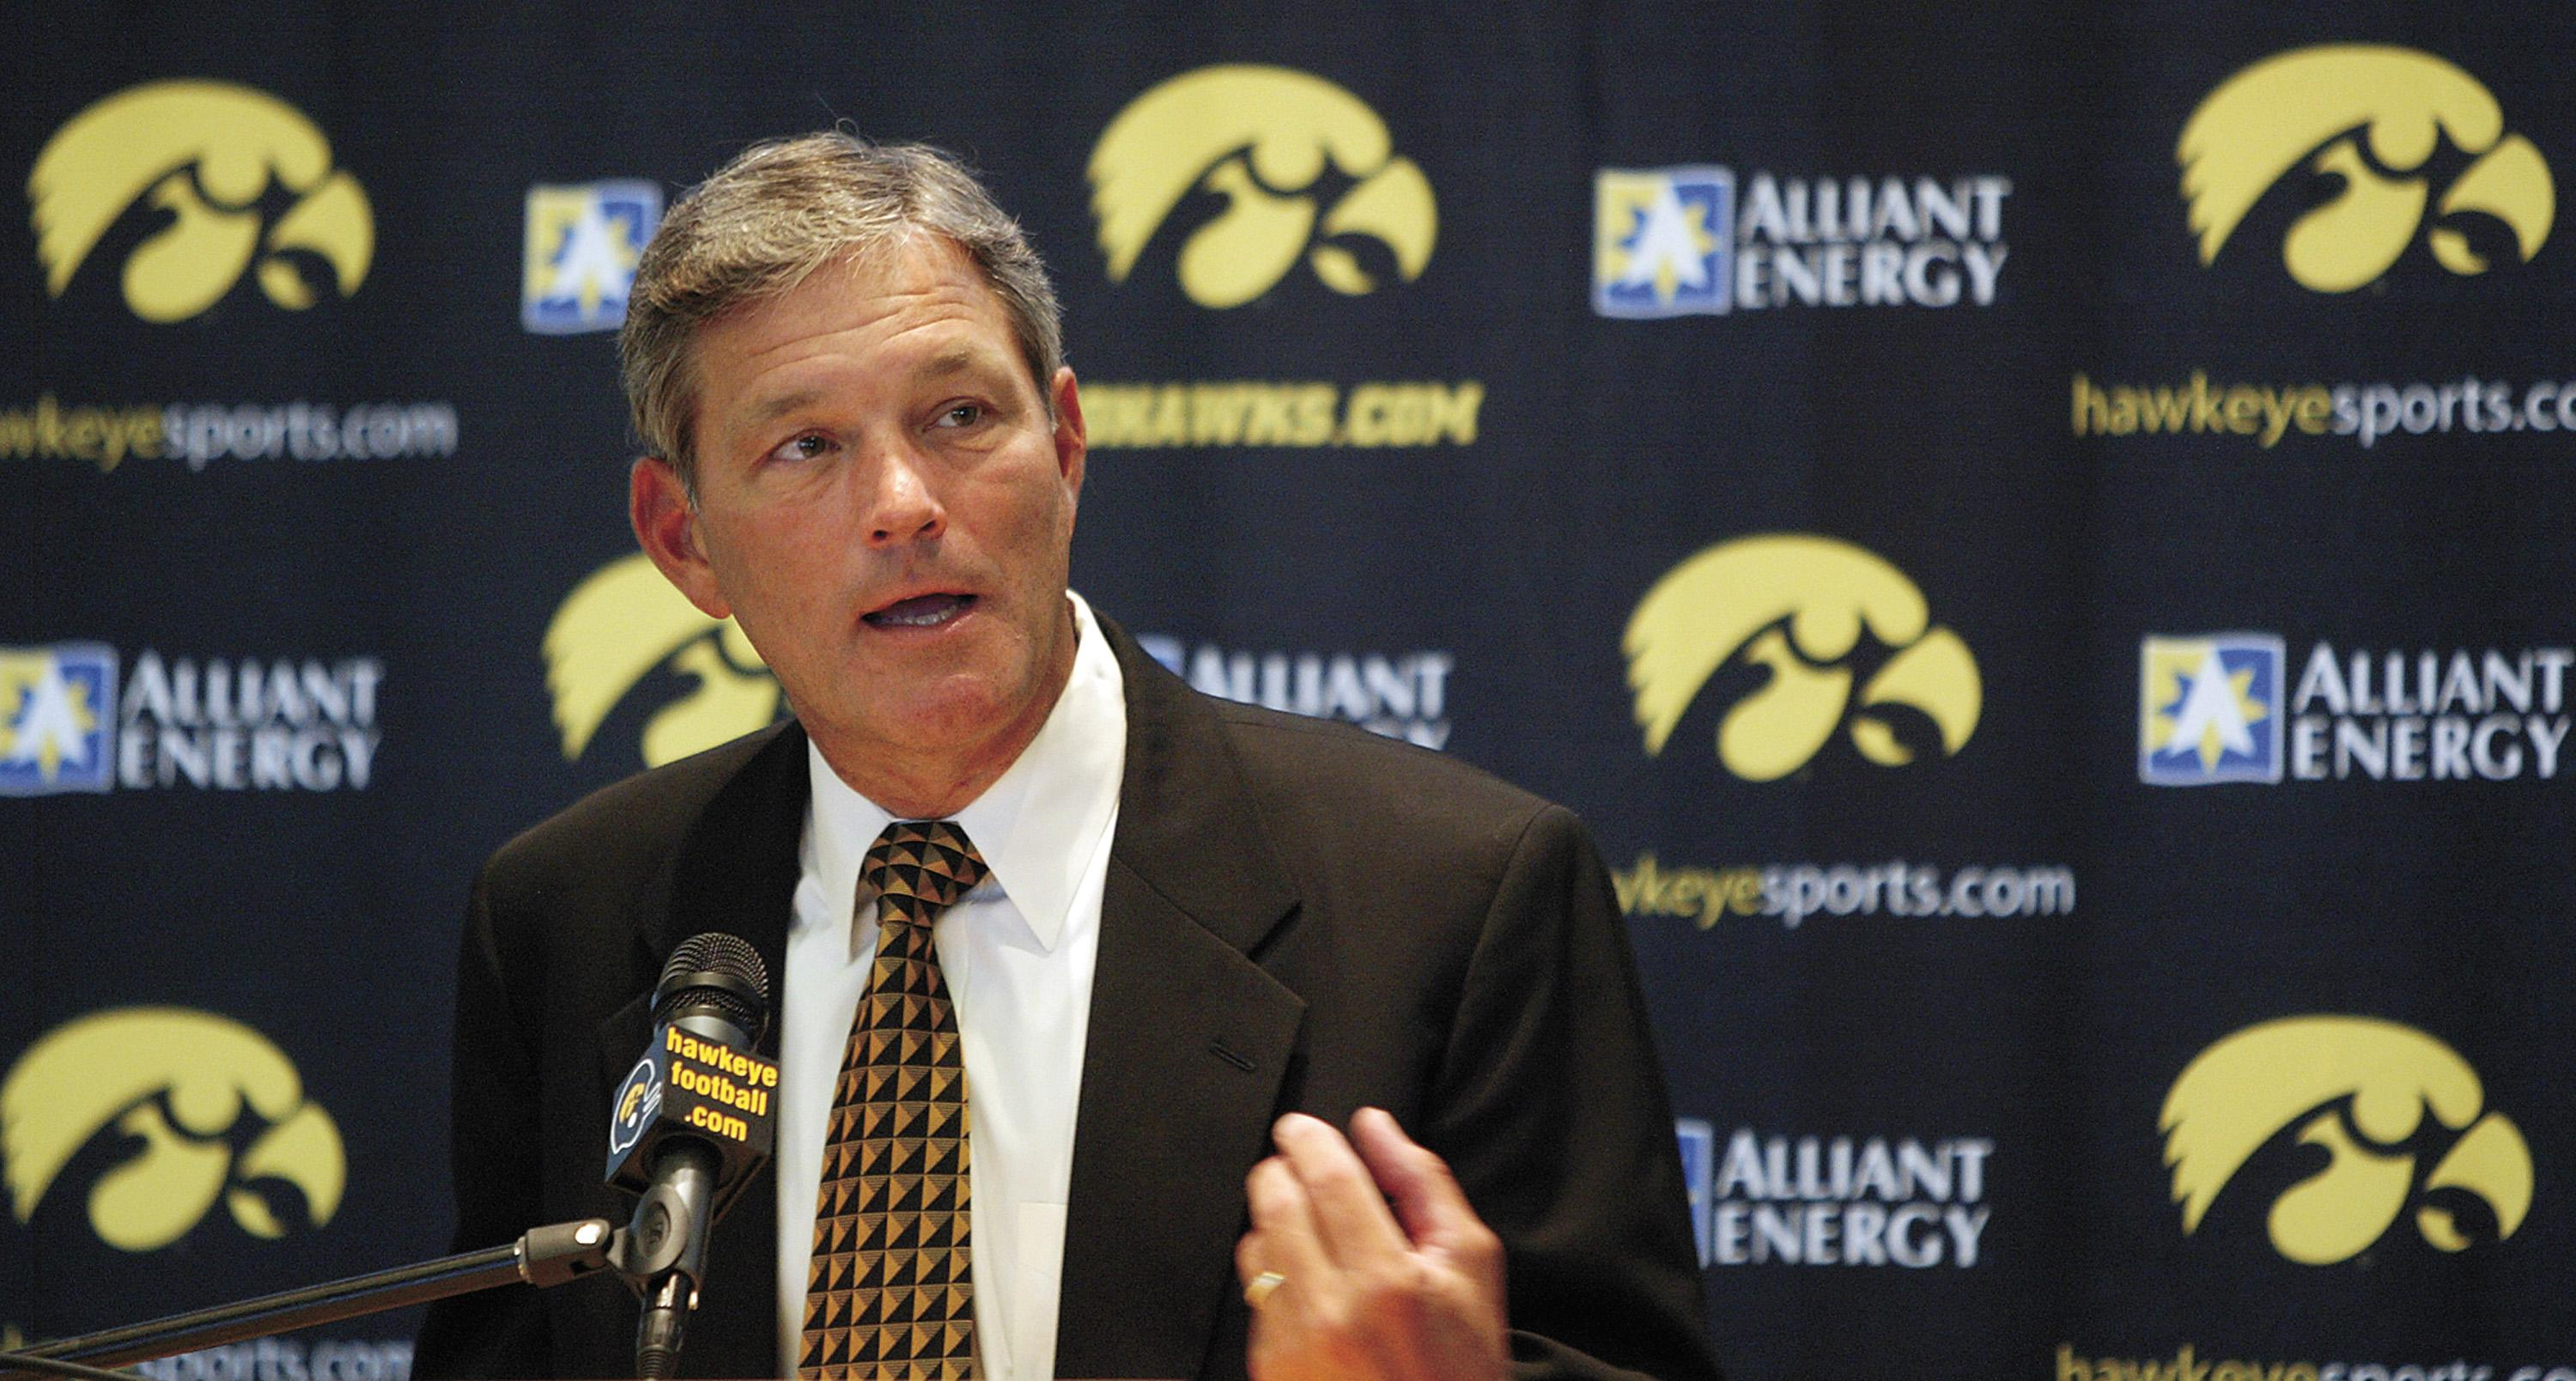 Is Kirk Ferentz the most overrated coach in college football? Pt. 2